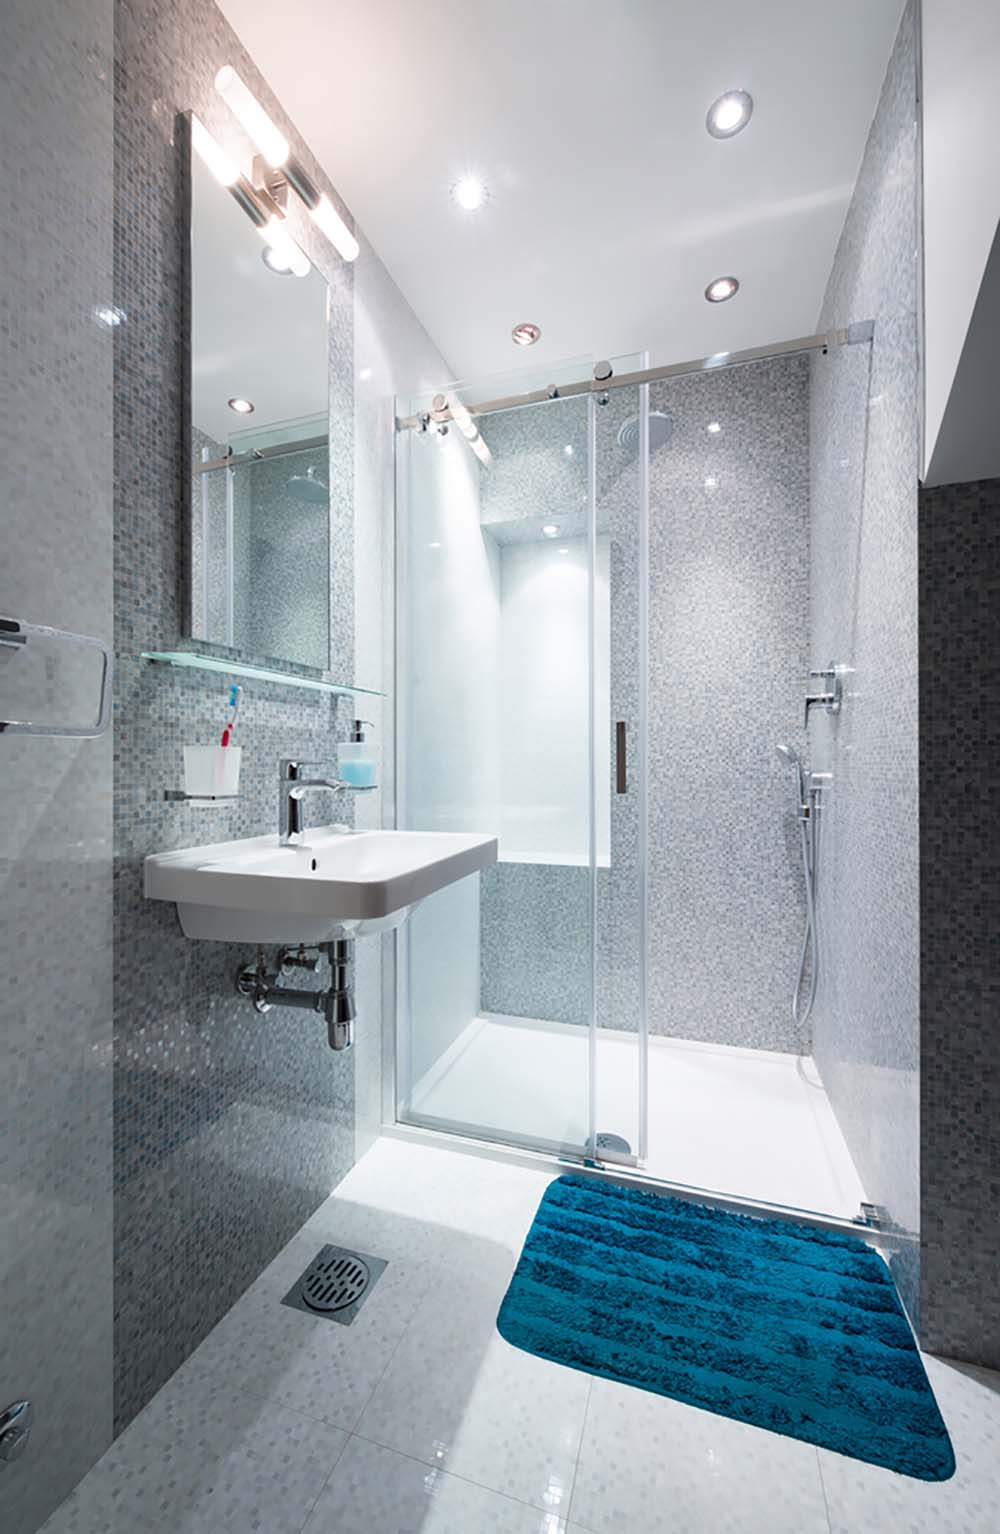 51 Beautiful and Functional Small Bathrooms - Page 2 of 3